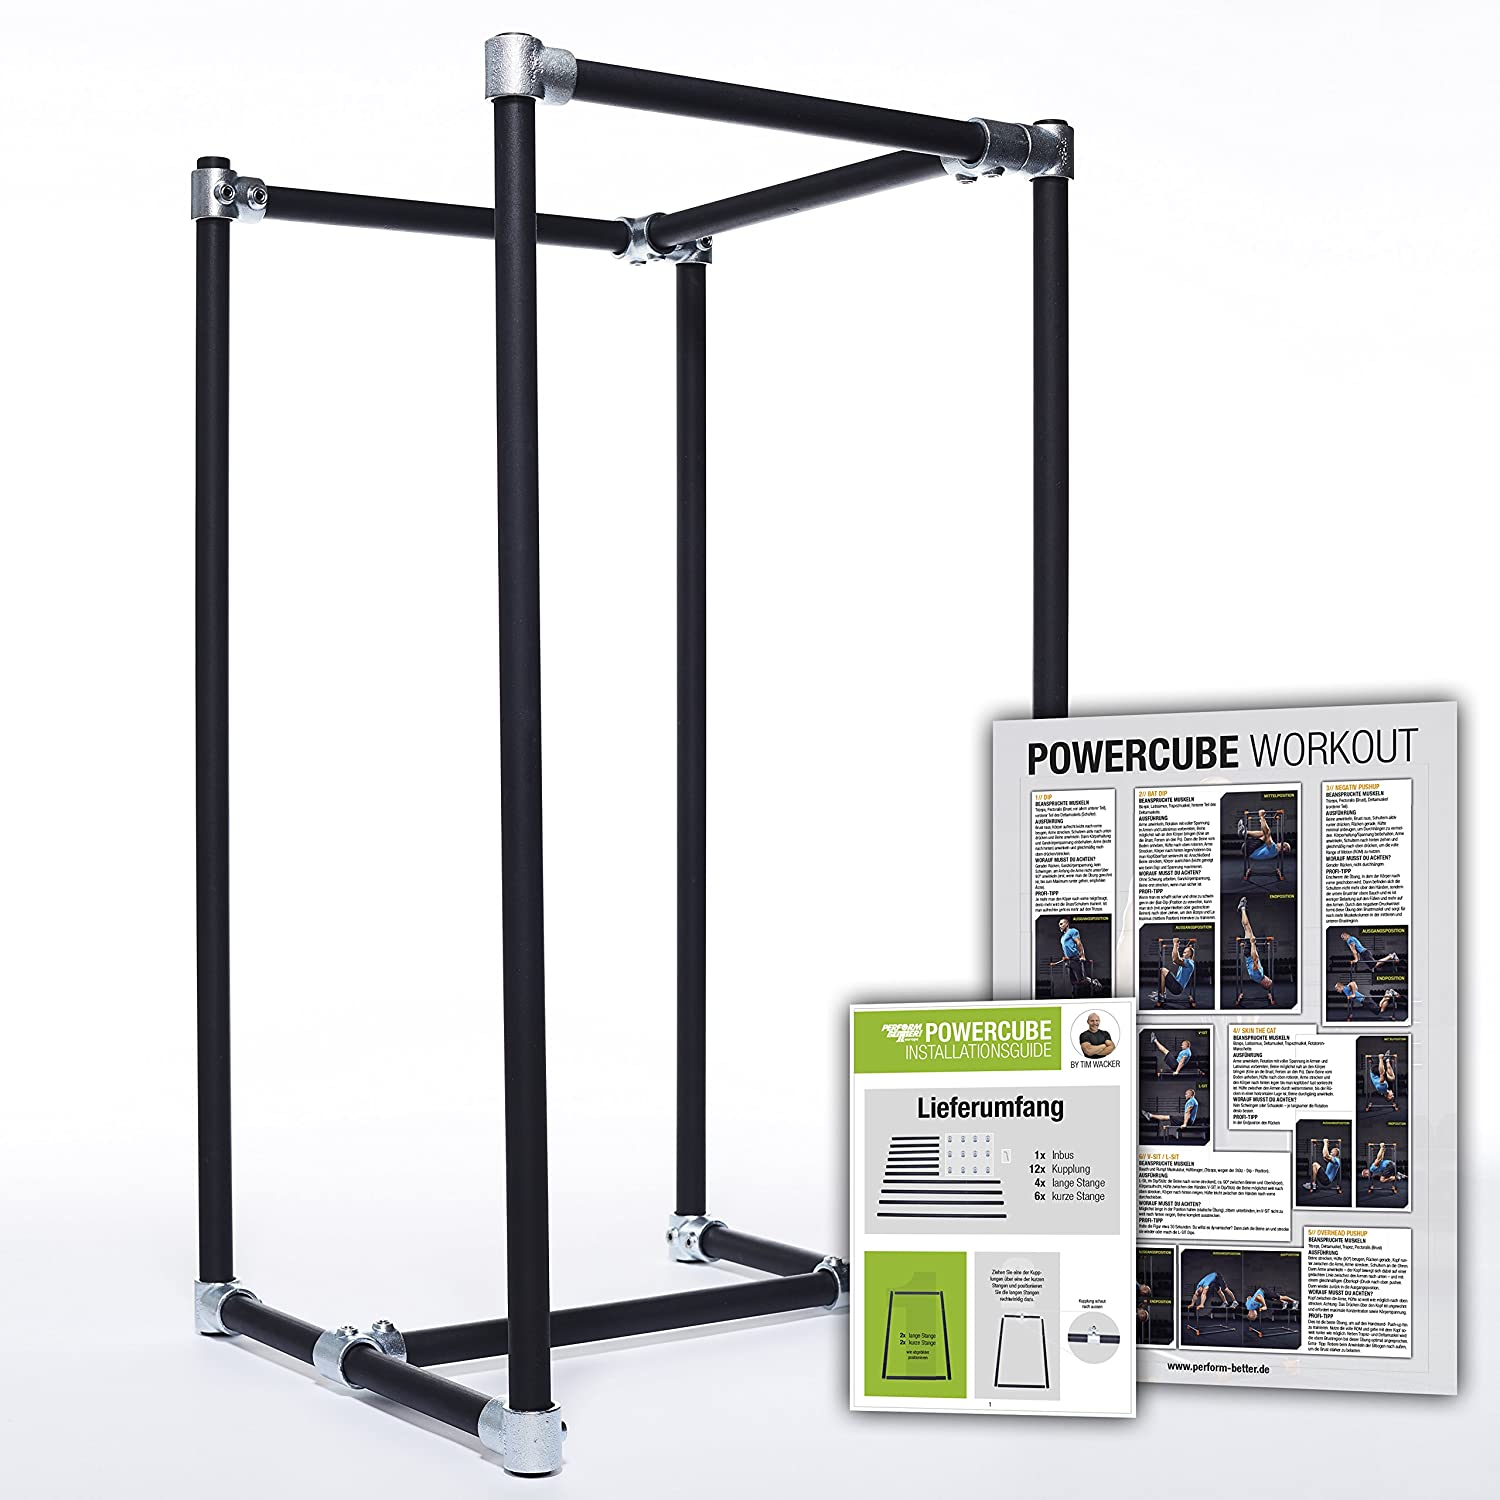 Perform Better USA PB PowerCube - Standard